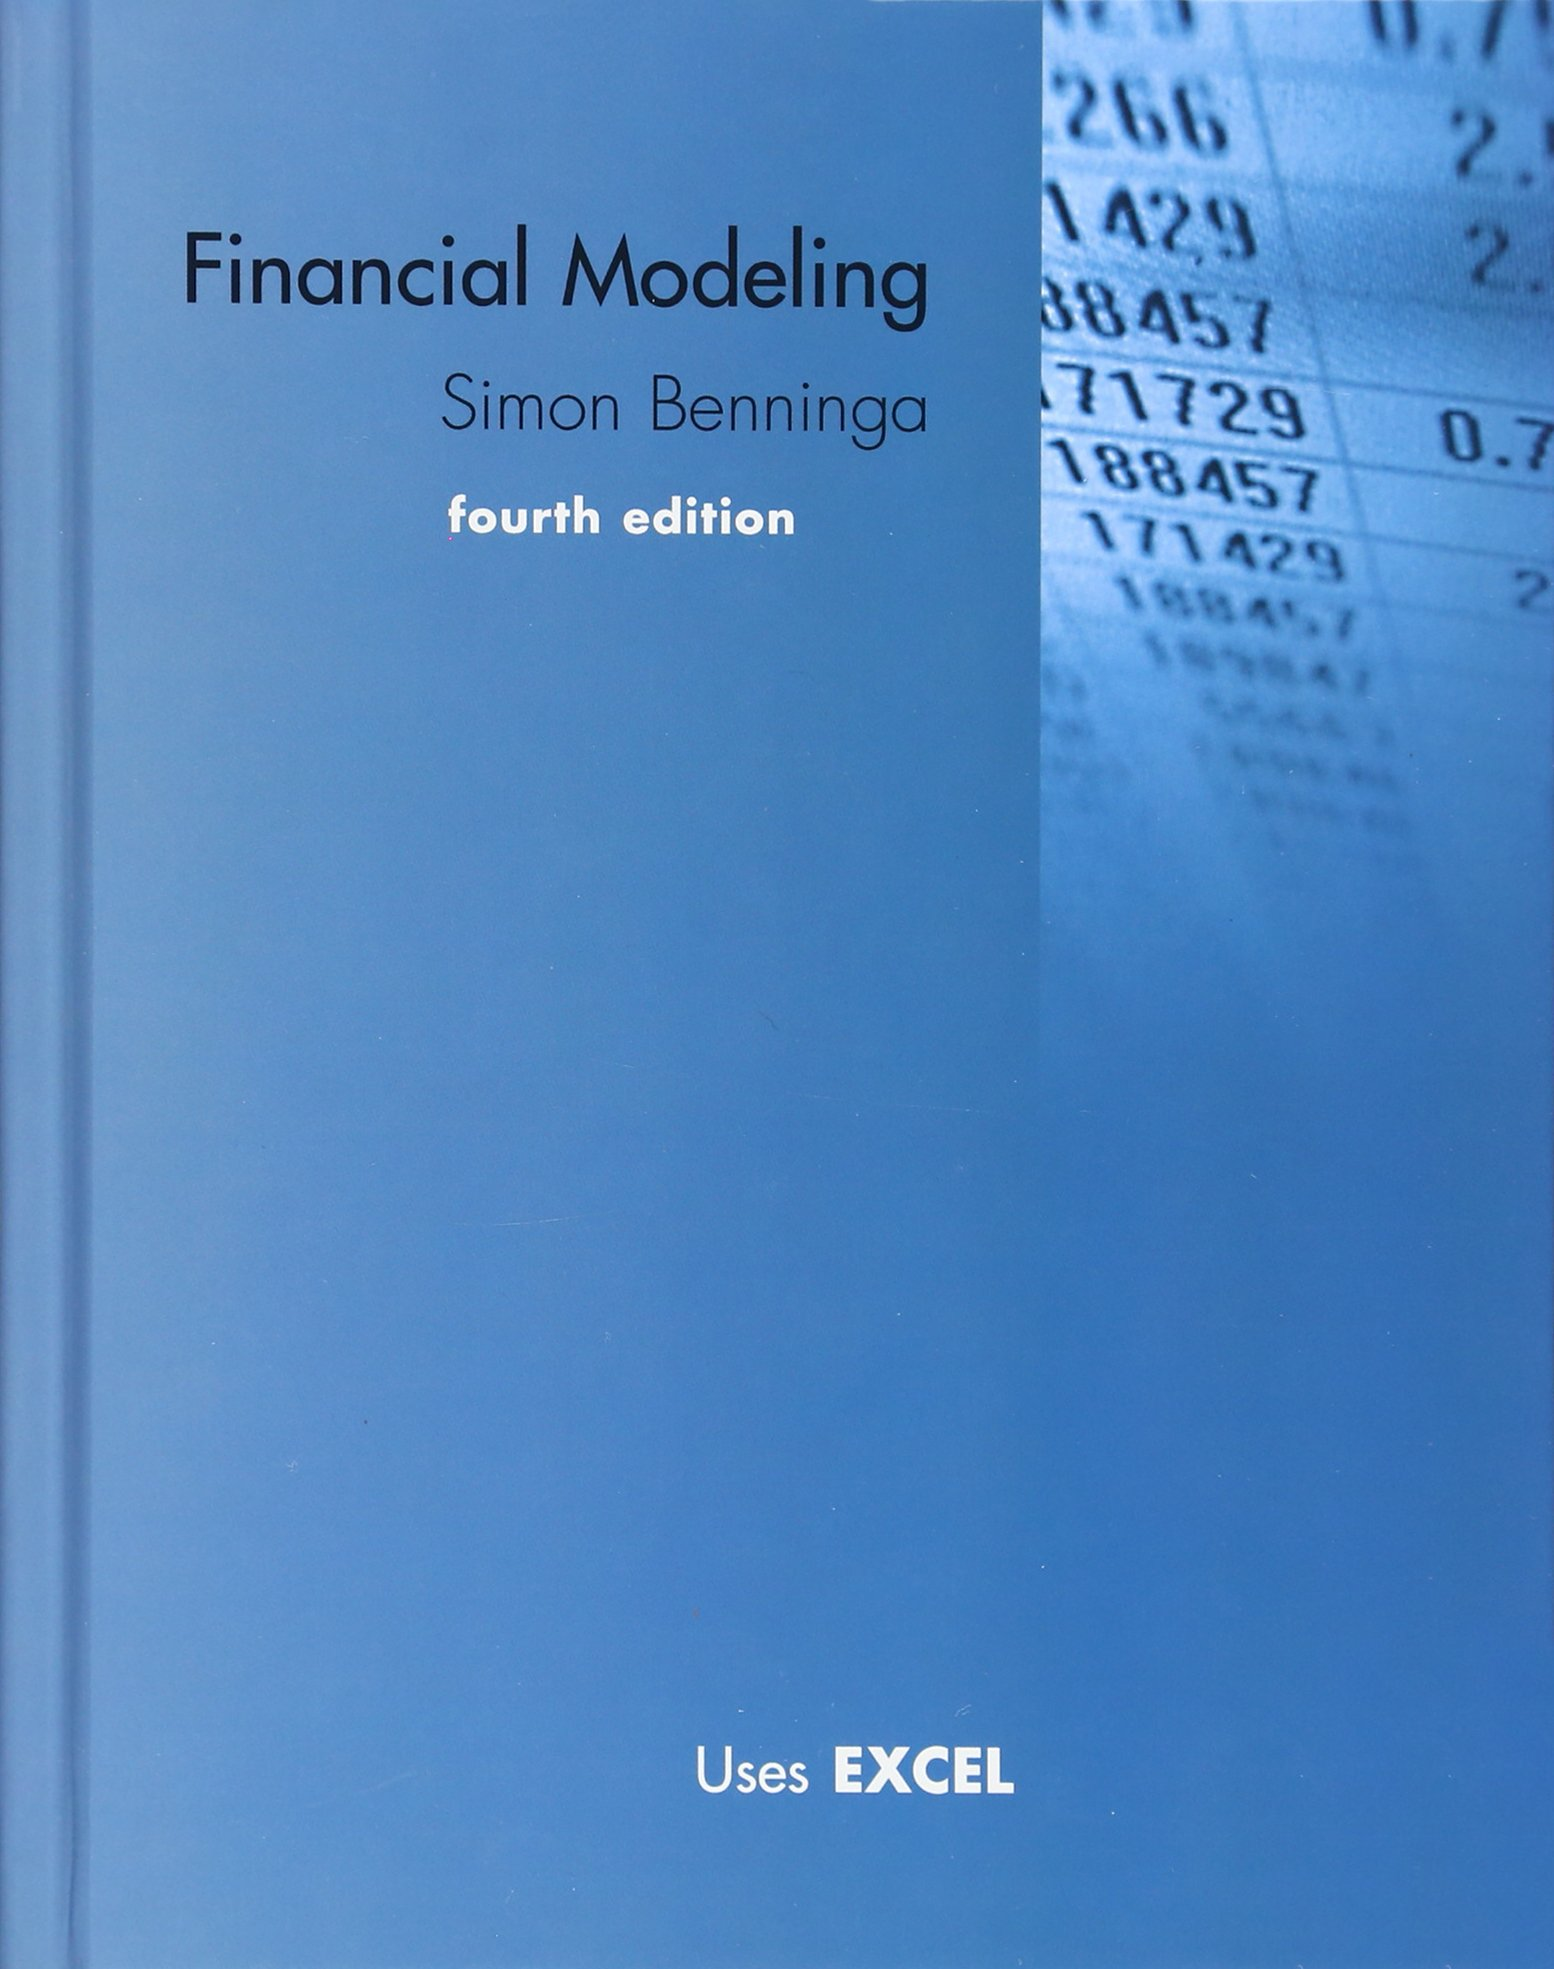 Financial Modeling (The MIT Press): Amazon.co.uk: Simon Benninga ...